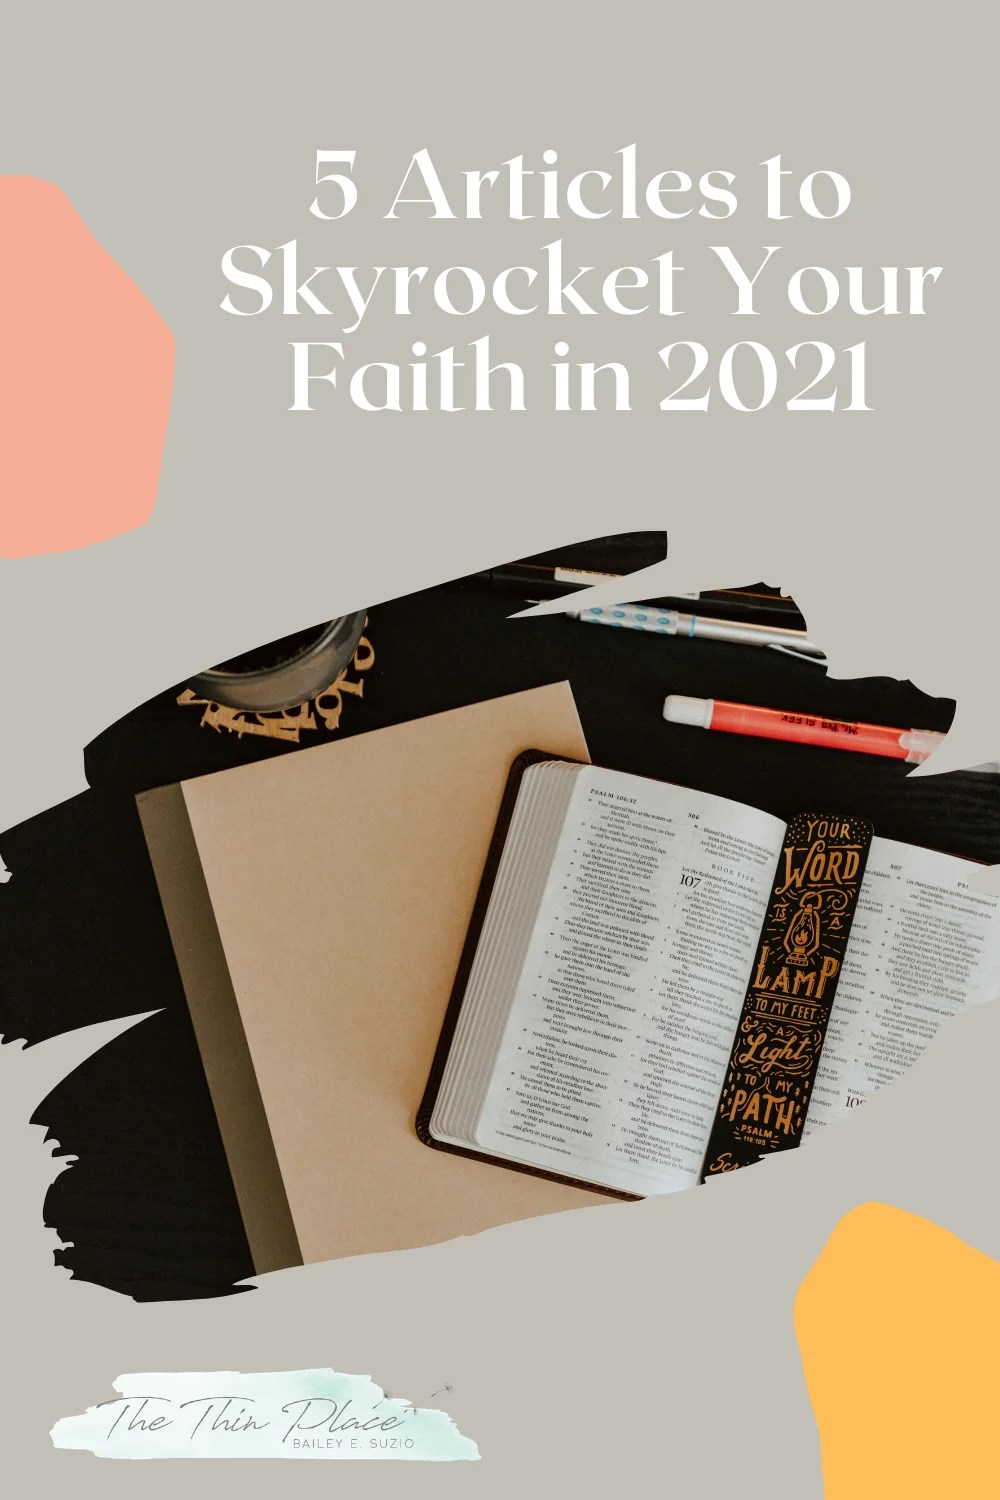 One thing is certain for all of us, if we are going to move into 2021 with stronger, deeper Christian faith, we need to be intentional. #devotional #christianwomen #womenintheword #spiritualgrowth